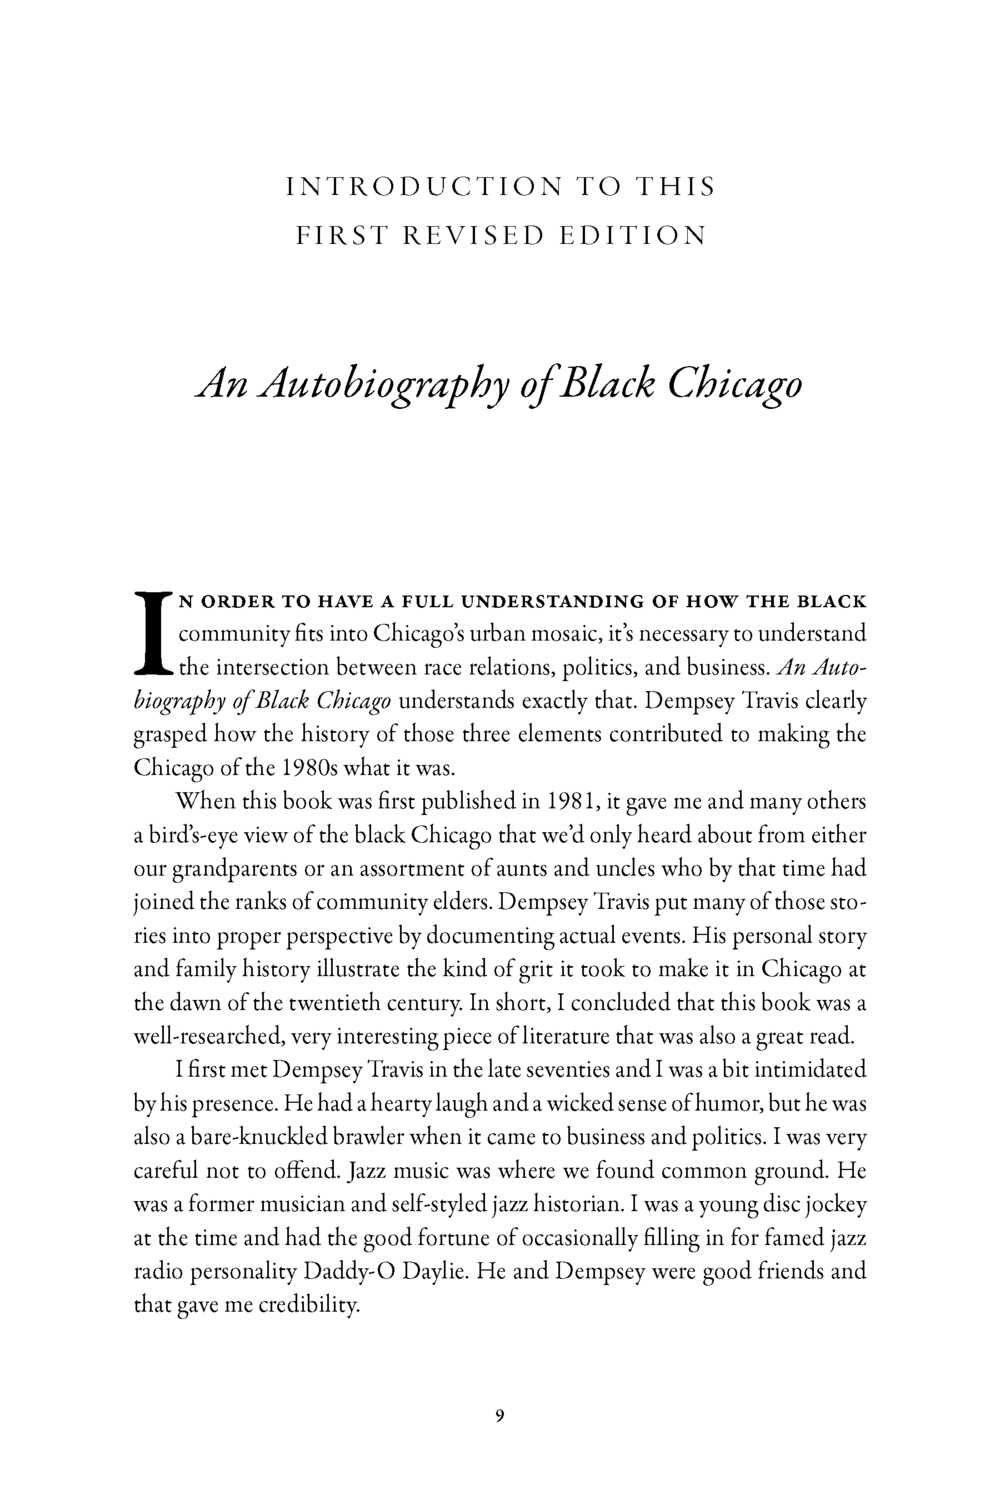 An Autobiography of Black Chicago_Page_03.png